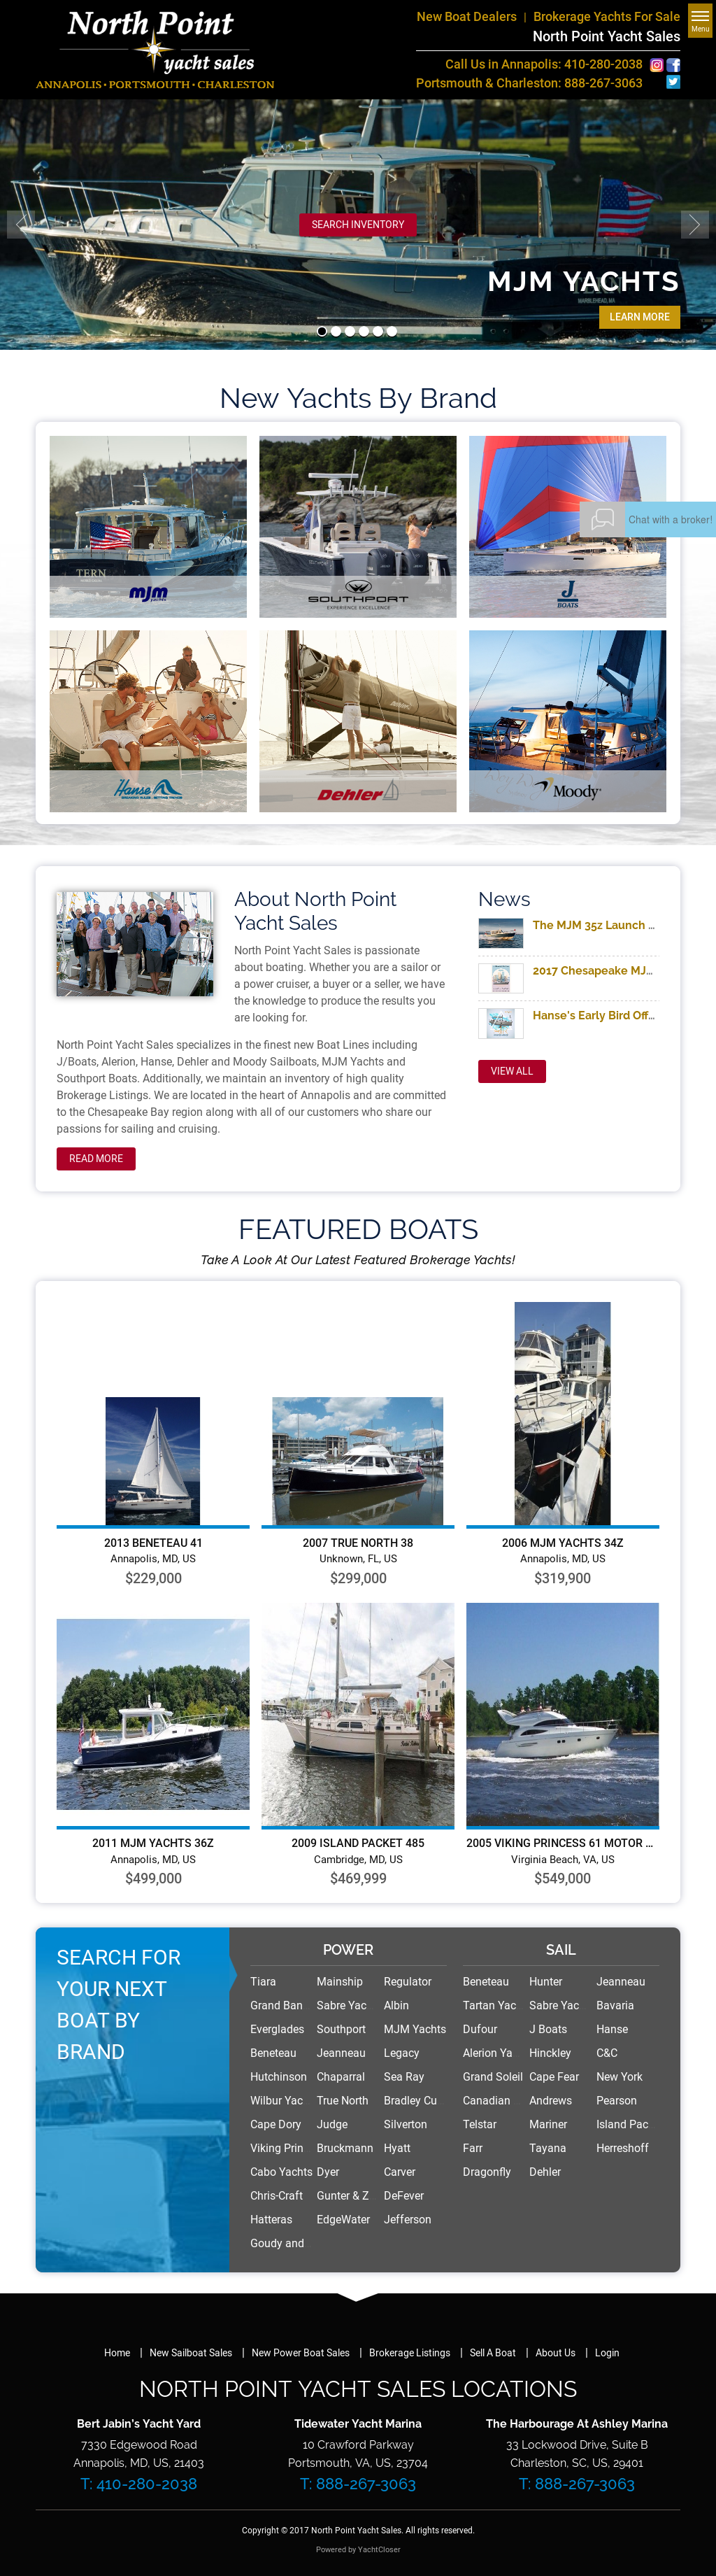 North Point Yacht Sales Competitors, Revenue and Employees